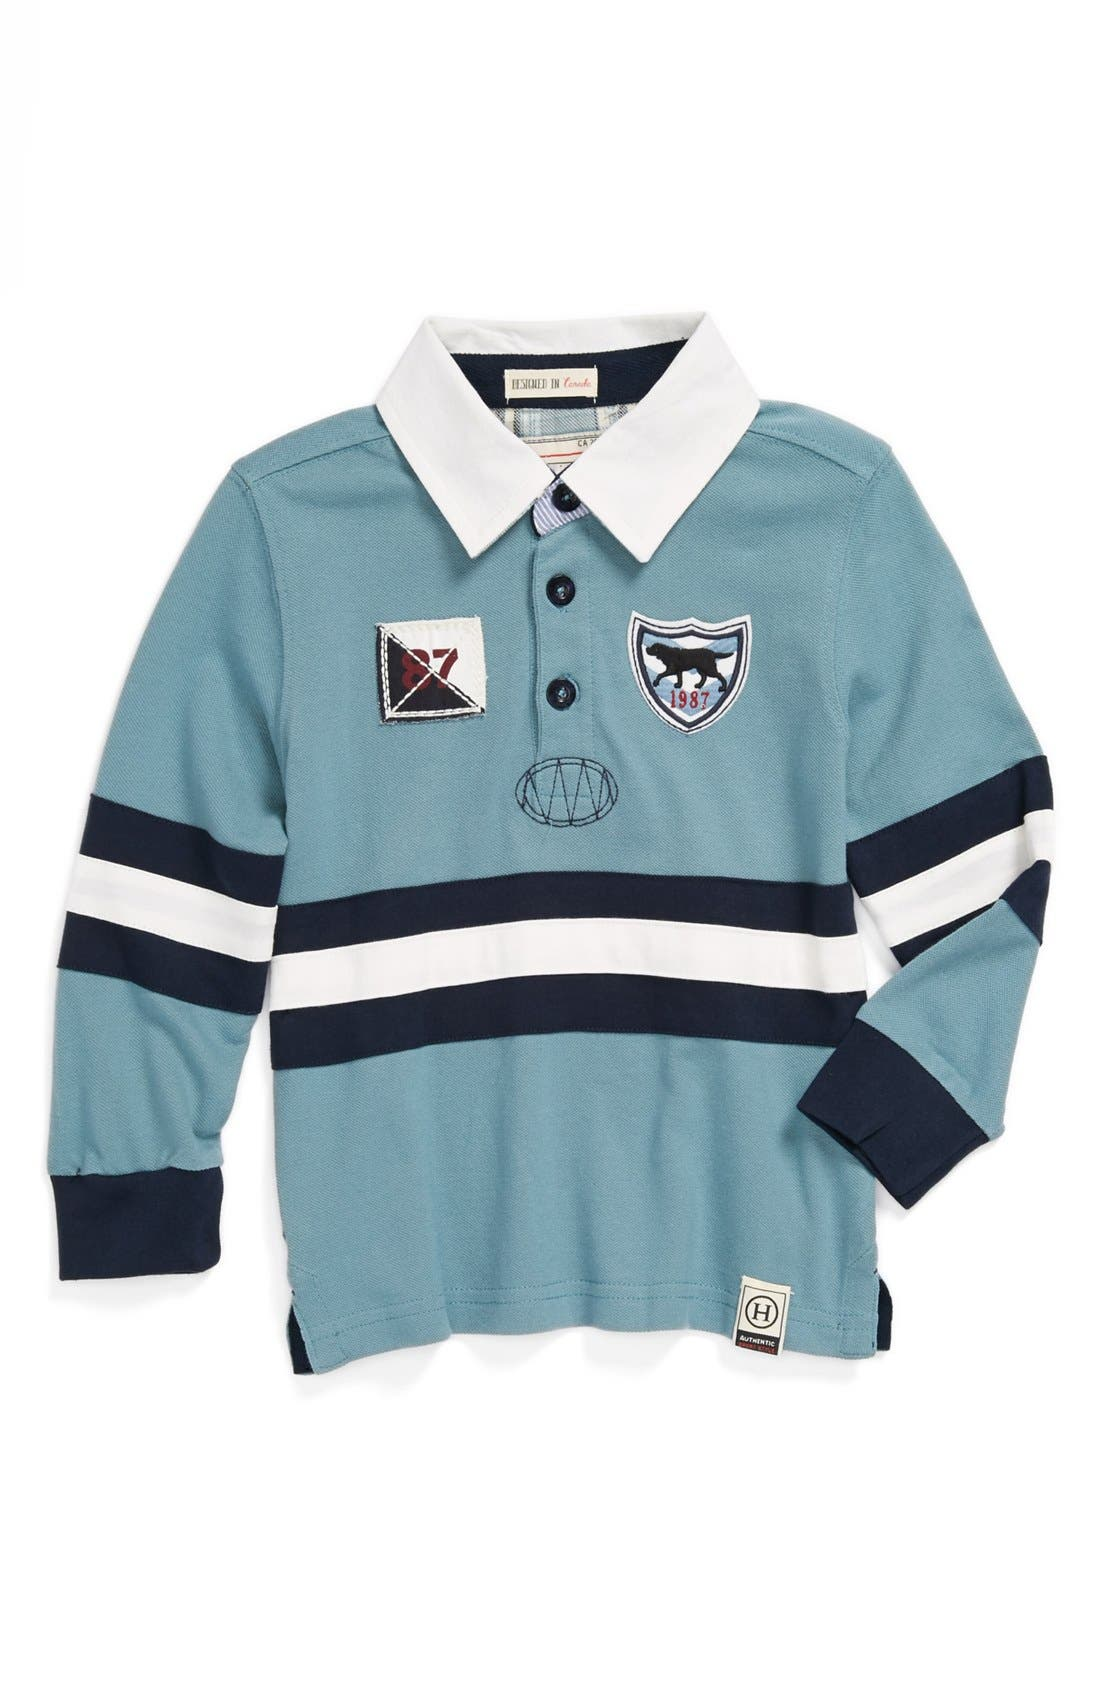 Alternate Image 1 Selected - Hatley 'Labs' Rugby Shirt (Toddler Boys)